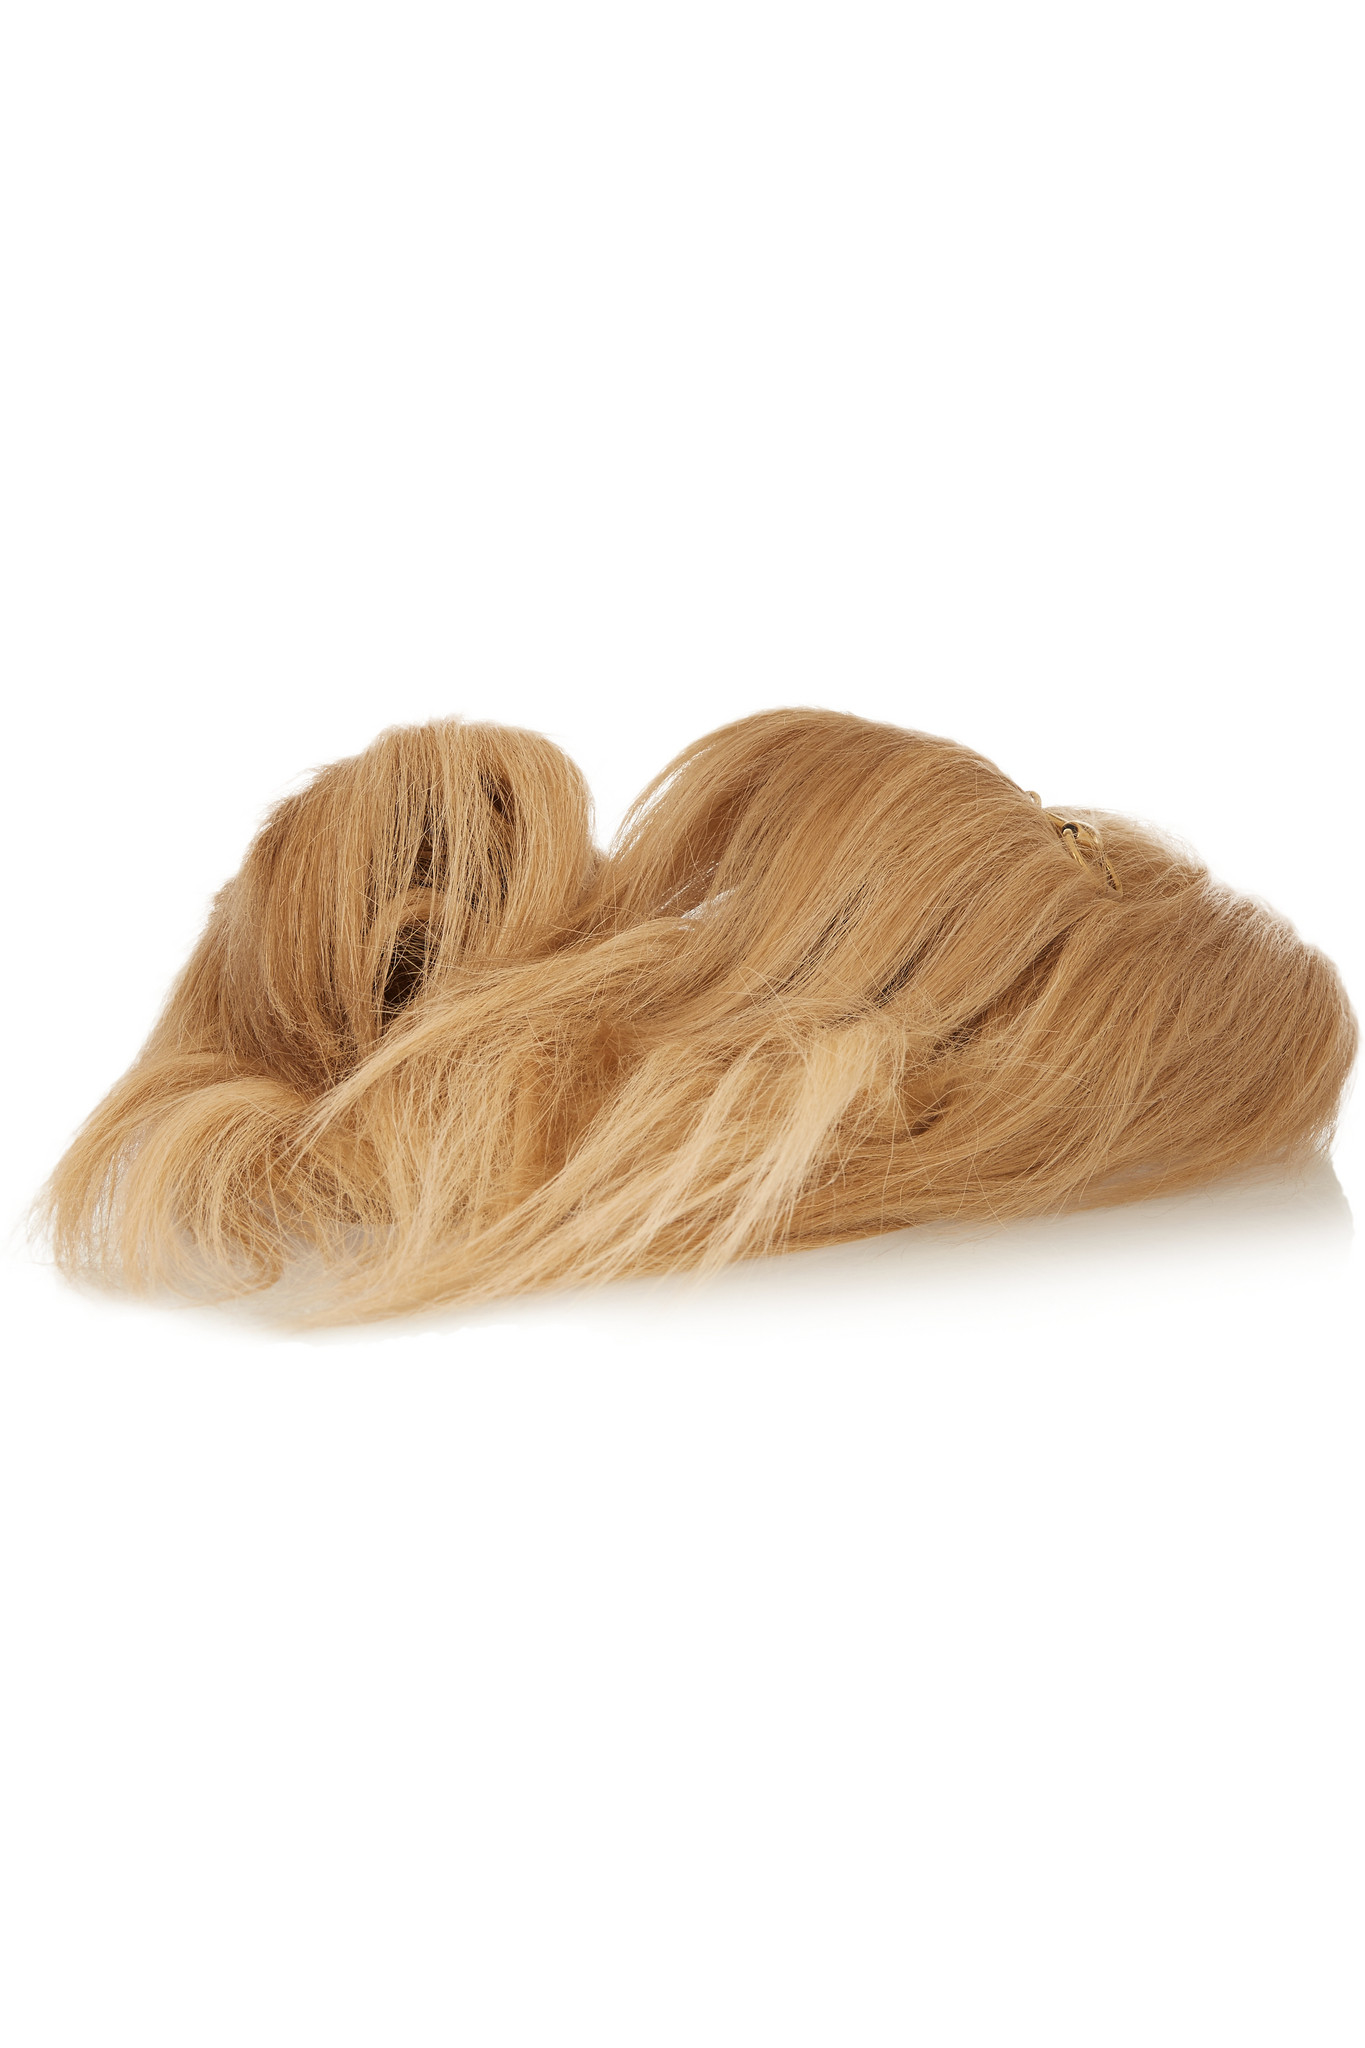 Lyst - Gucci Horsebit-detailed Goat Hair Slippers In Natural